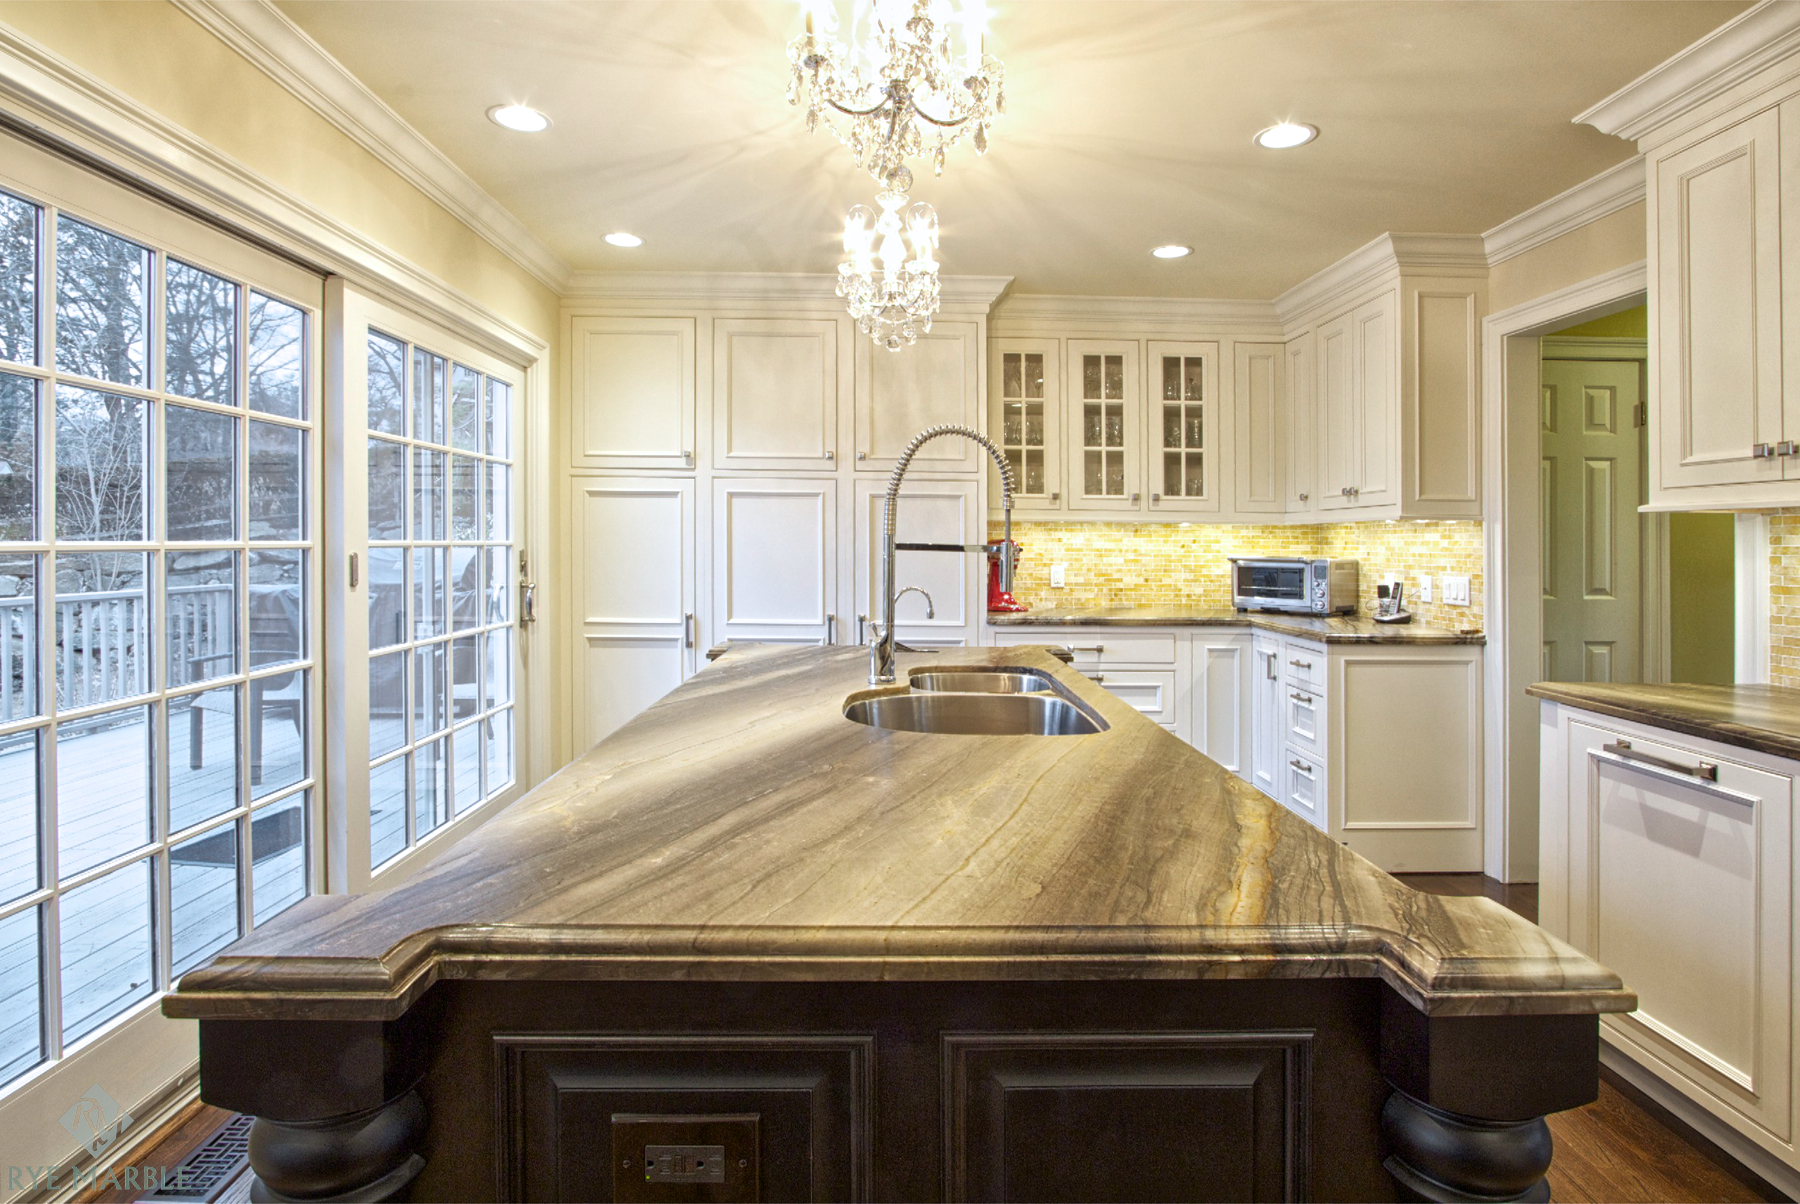 A kitchen with a traditional feel featuring granite countertops from NEKA